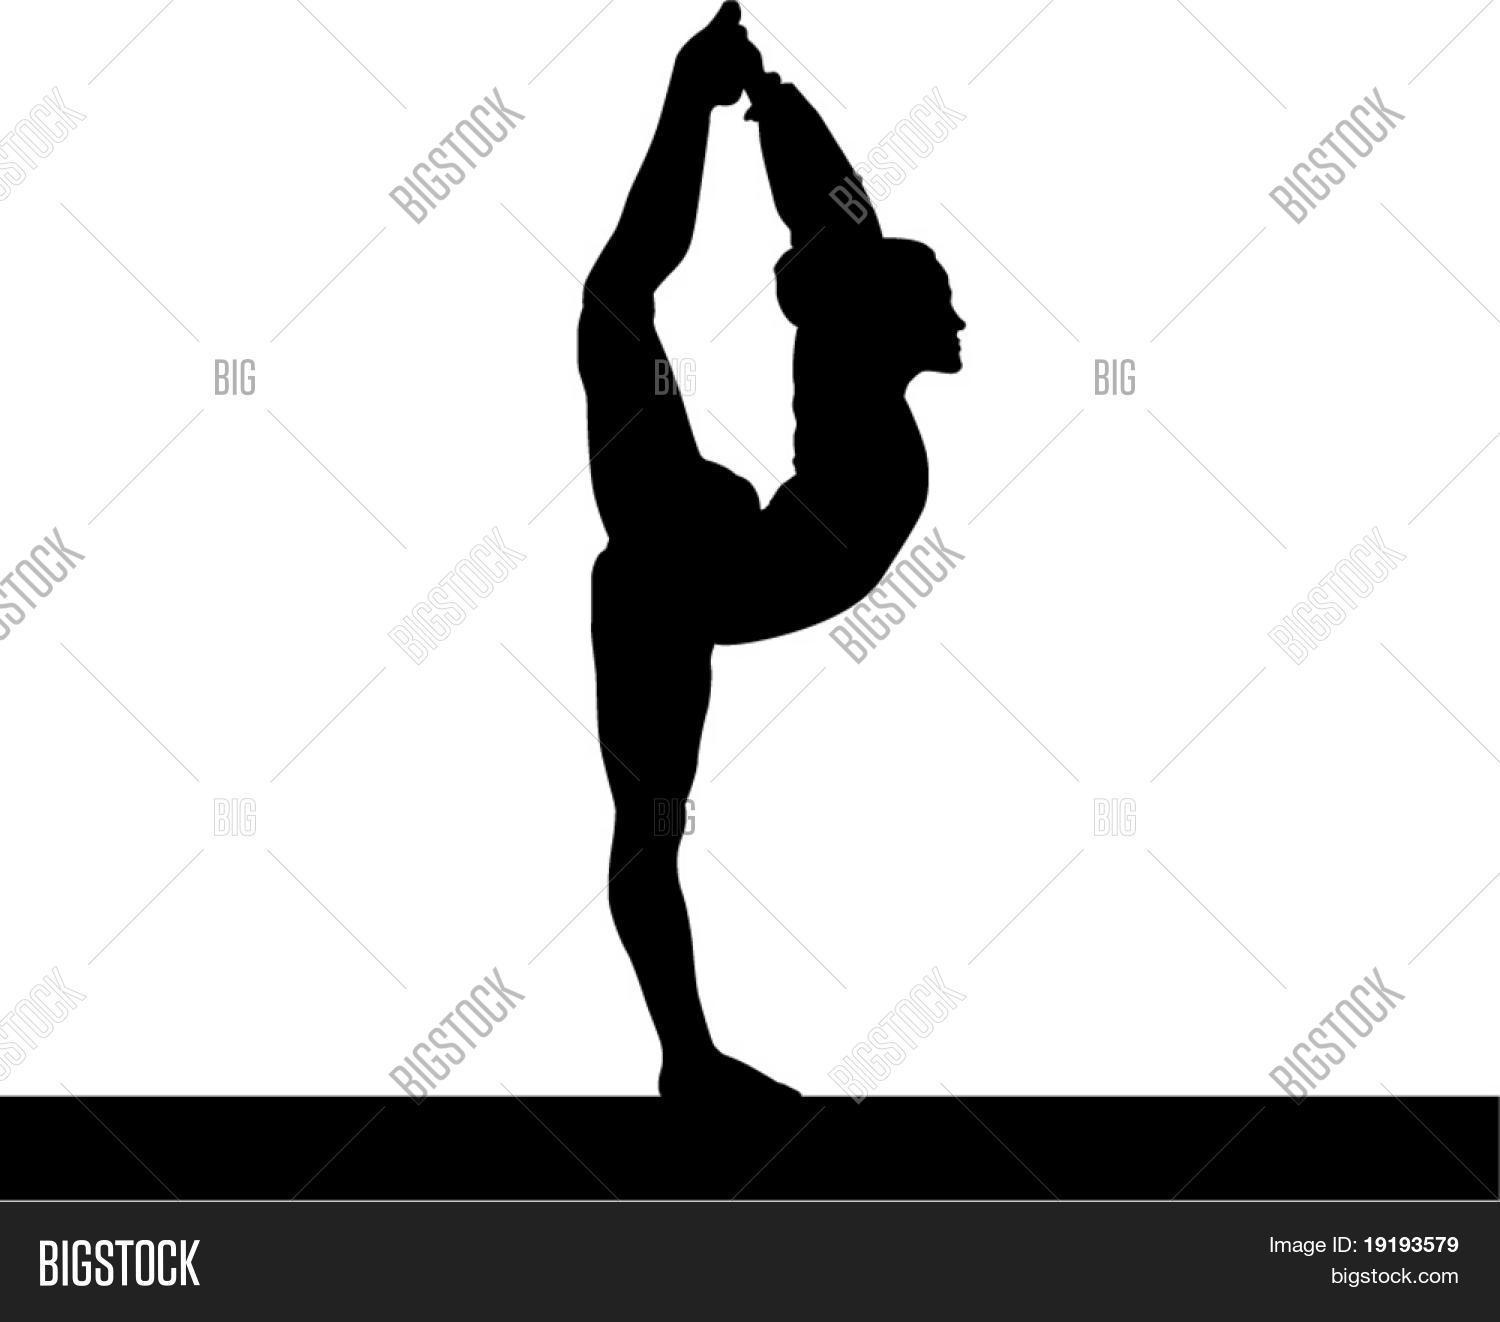 how to draw a girl doing the splits yoga silhouette pesquisa google yoga for kids splits doing how draw to girl the a